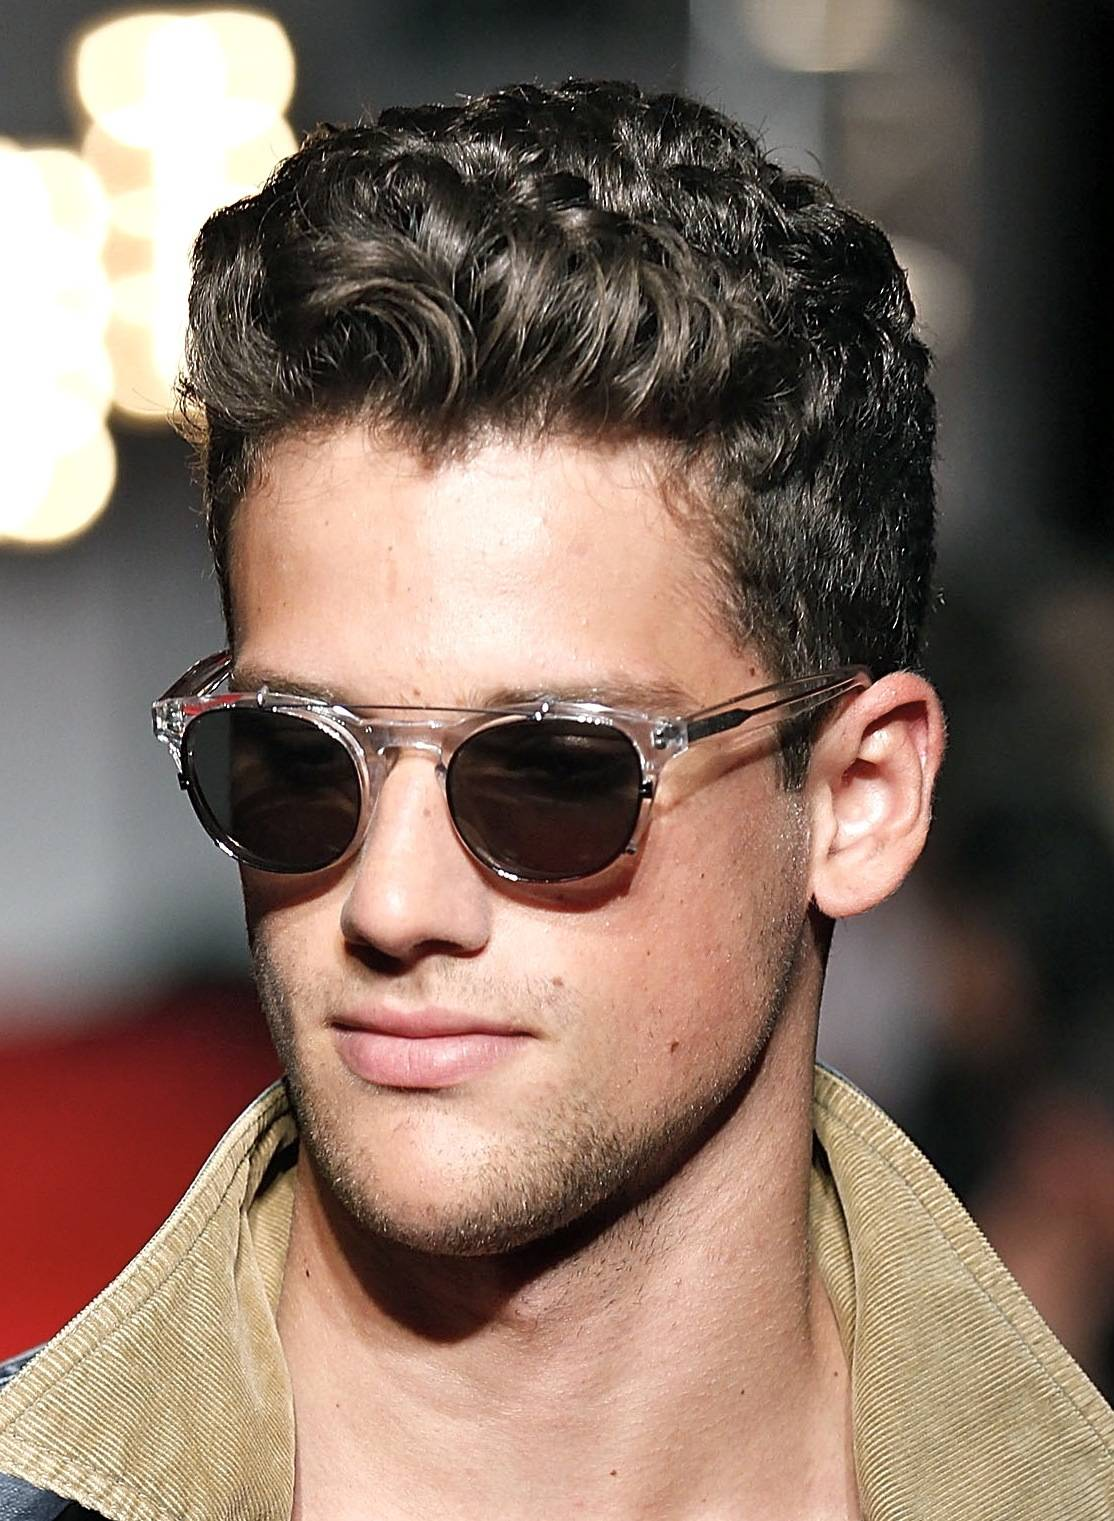 in style mens hair rachael hair stylist top 25 s hair styles 7516 | mens curly hairstyle